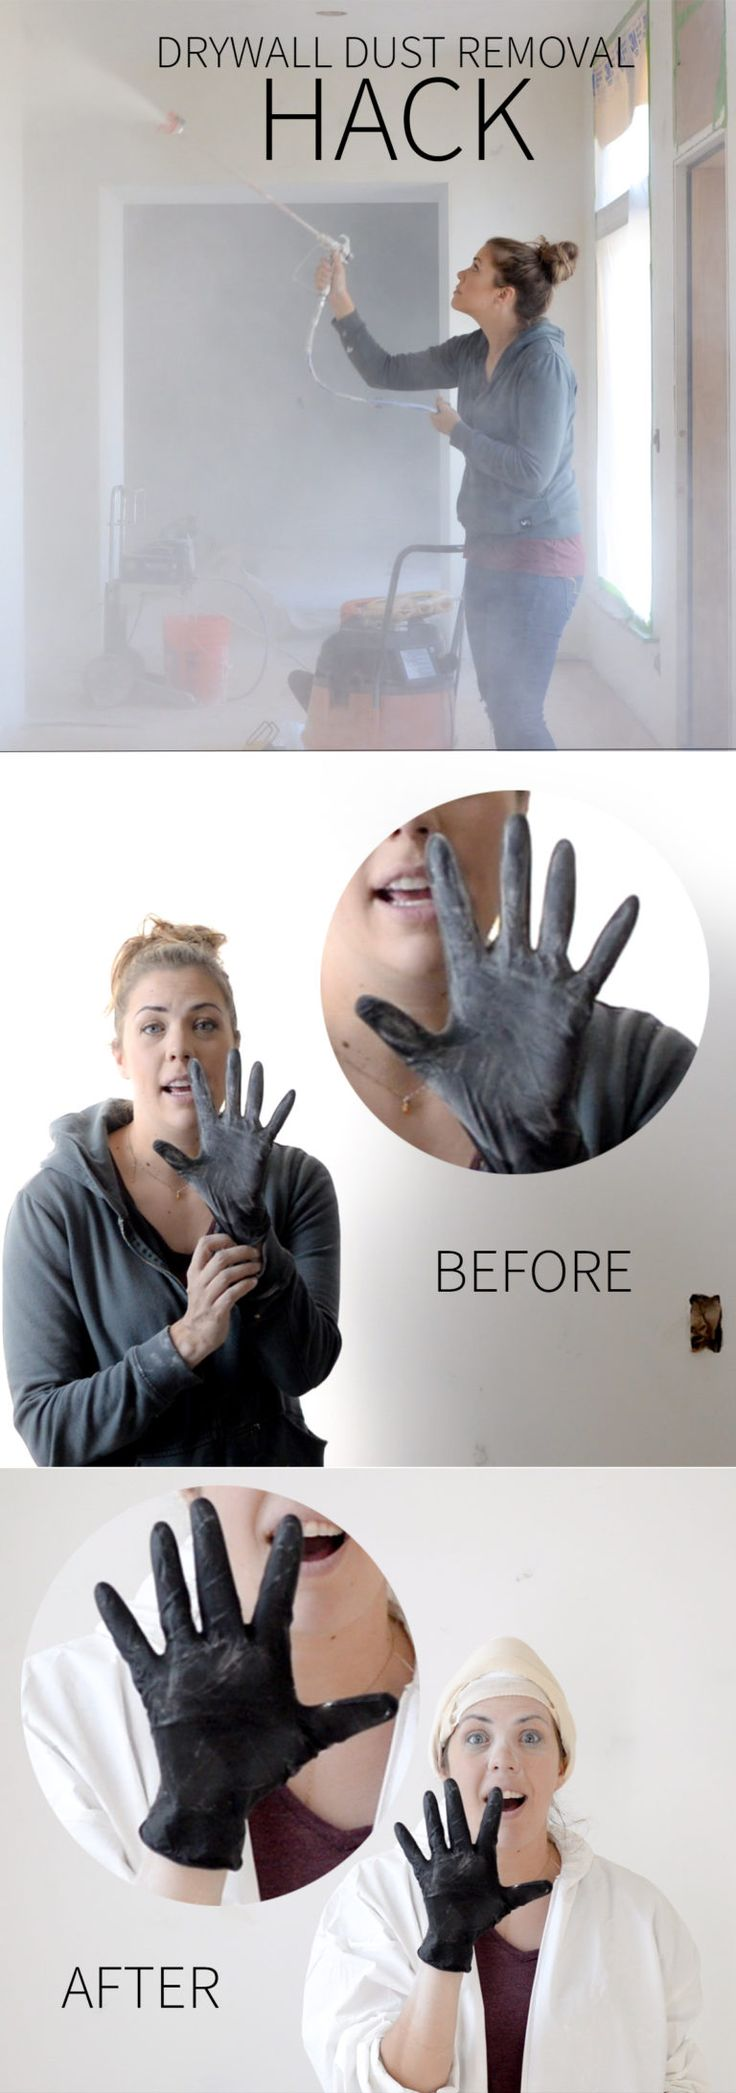 Drywall Dust Removal Hack (That Most Professionals Don't Even Know) • Vintage Revivals | Home Decor Hacks | How to install drywall #diyhomedecor #tipsandtricks #lifehacks